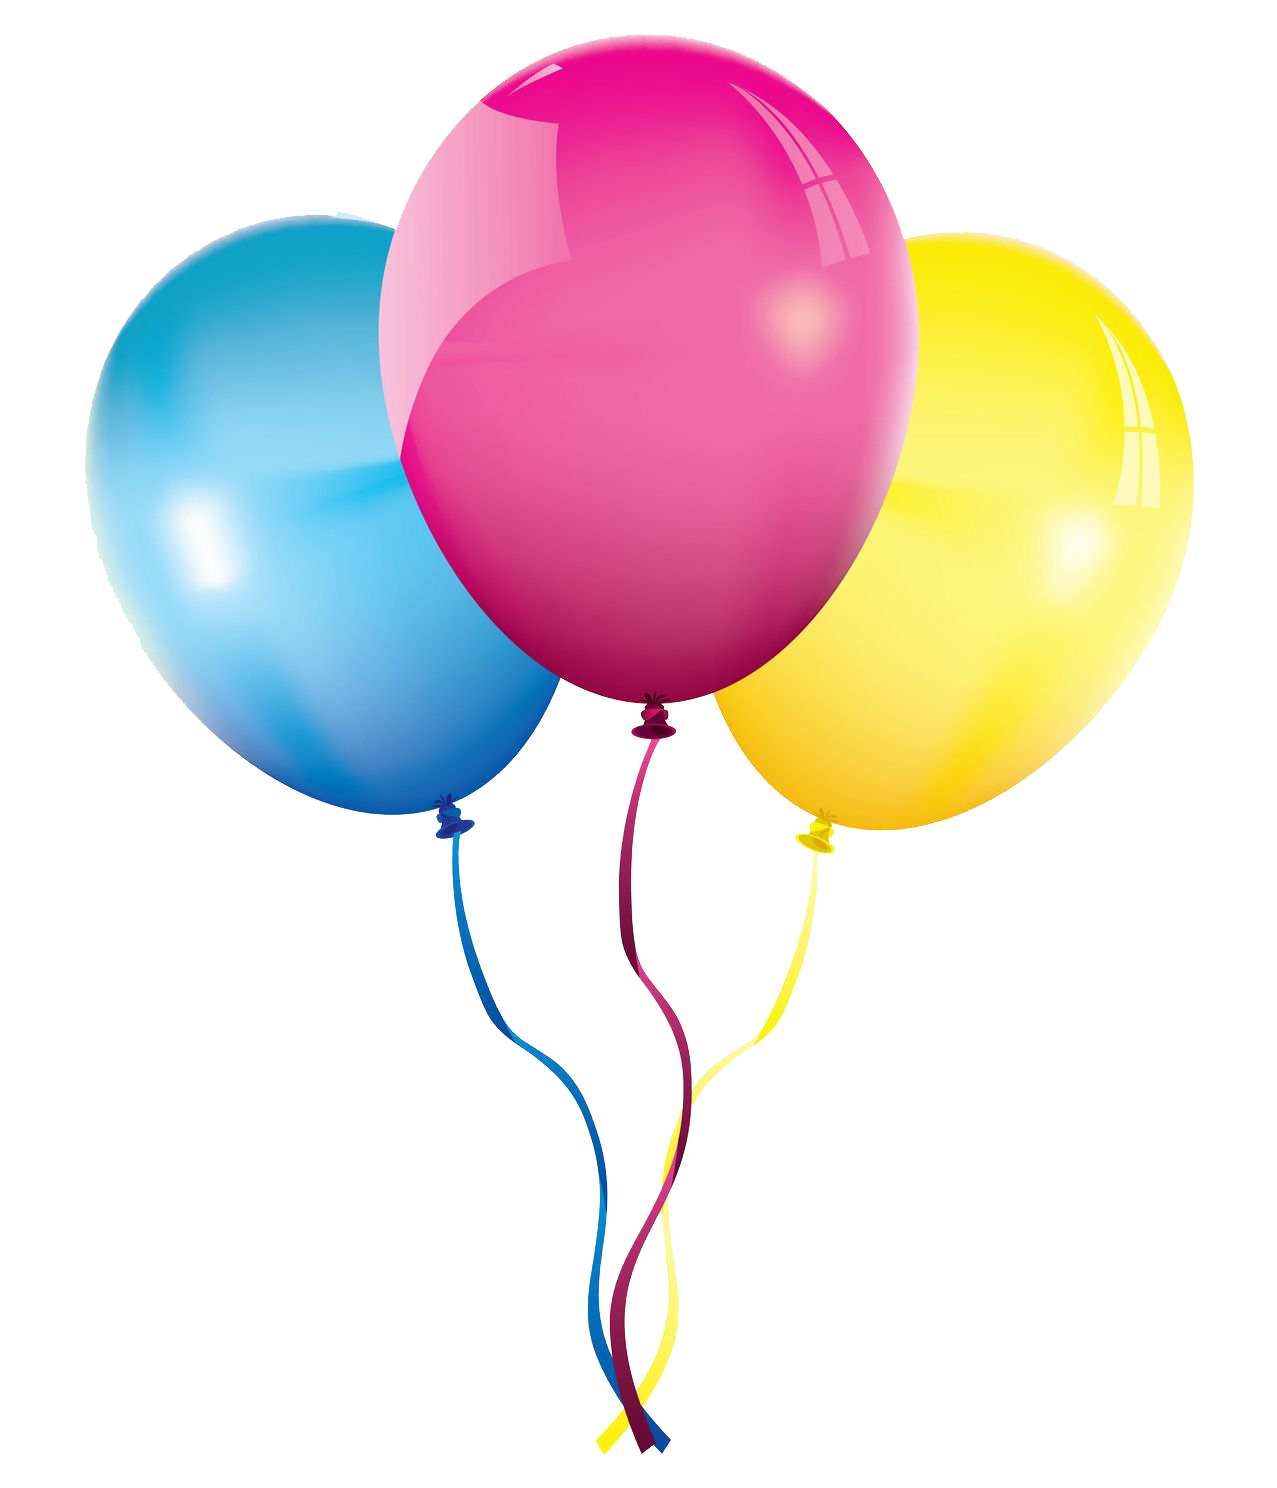 Balloons PNG File - Ballons PNG